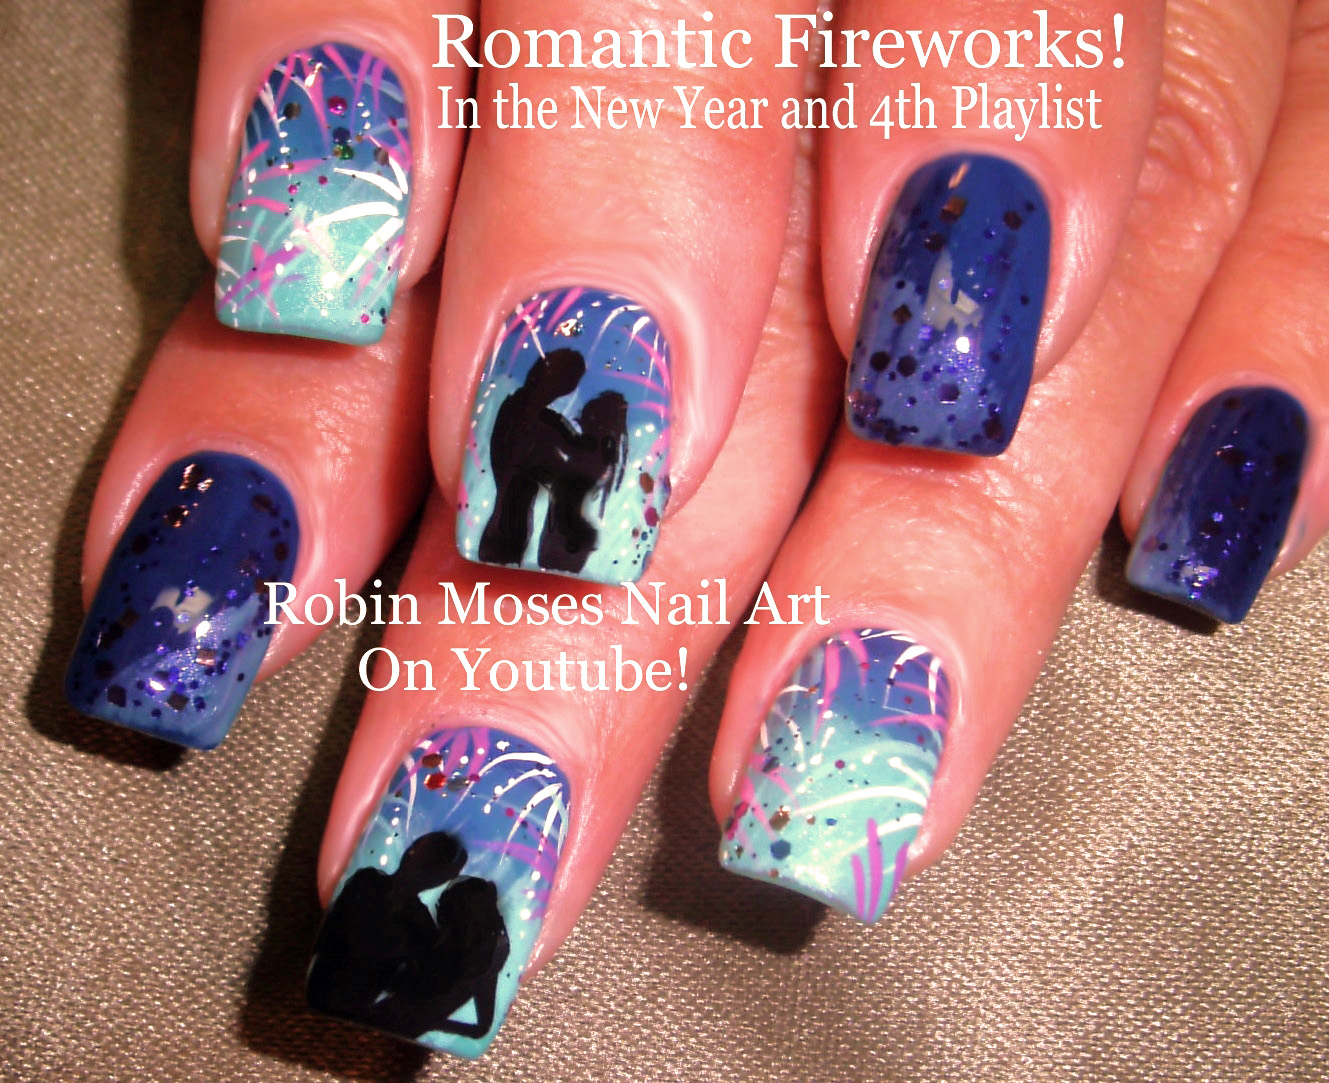 Robin moses nail art 2015 new years eve 2016 nail art design how to paint fireworks prinsesfo Images